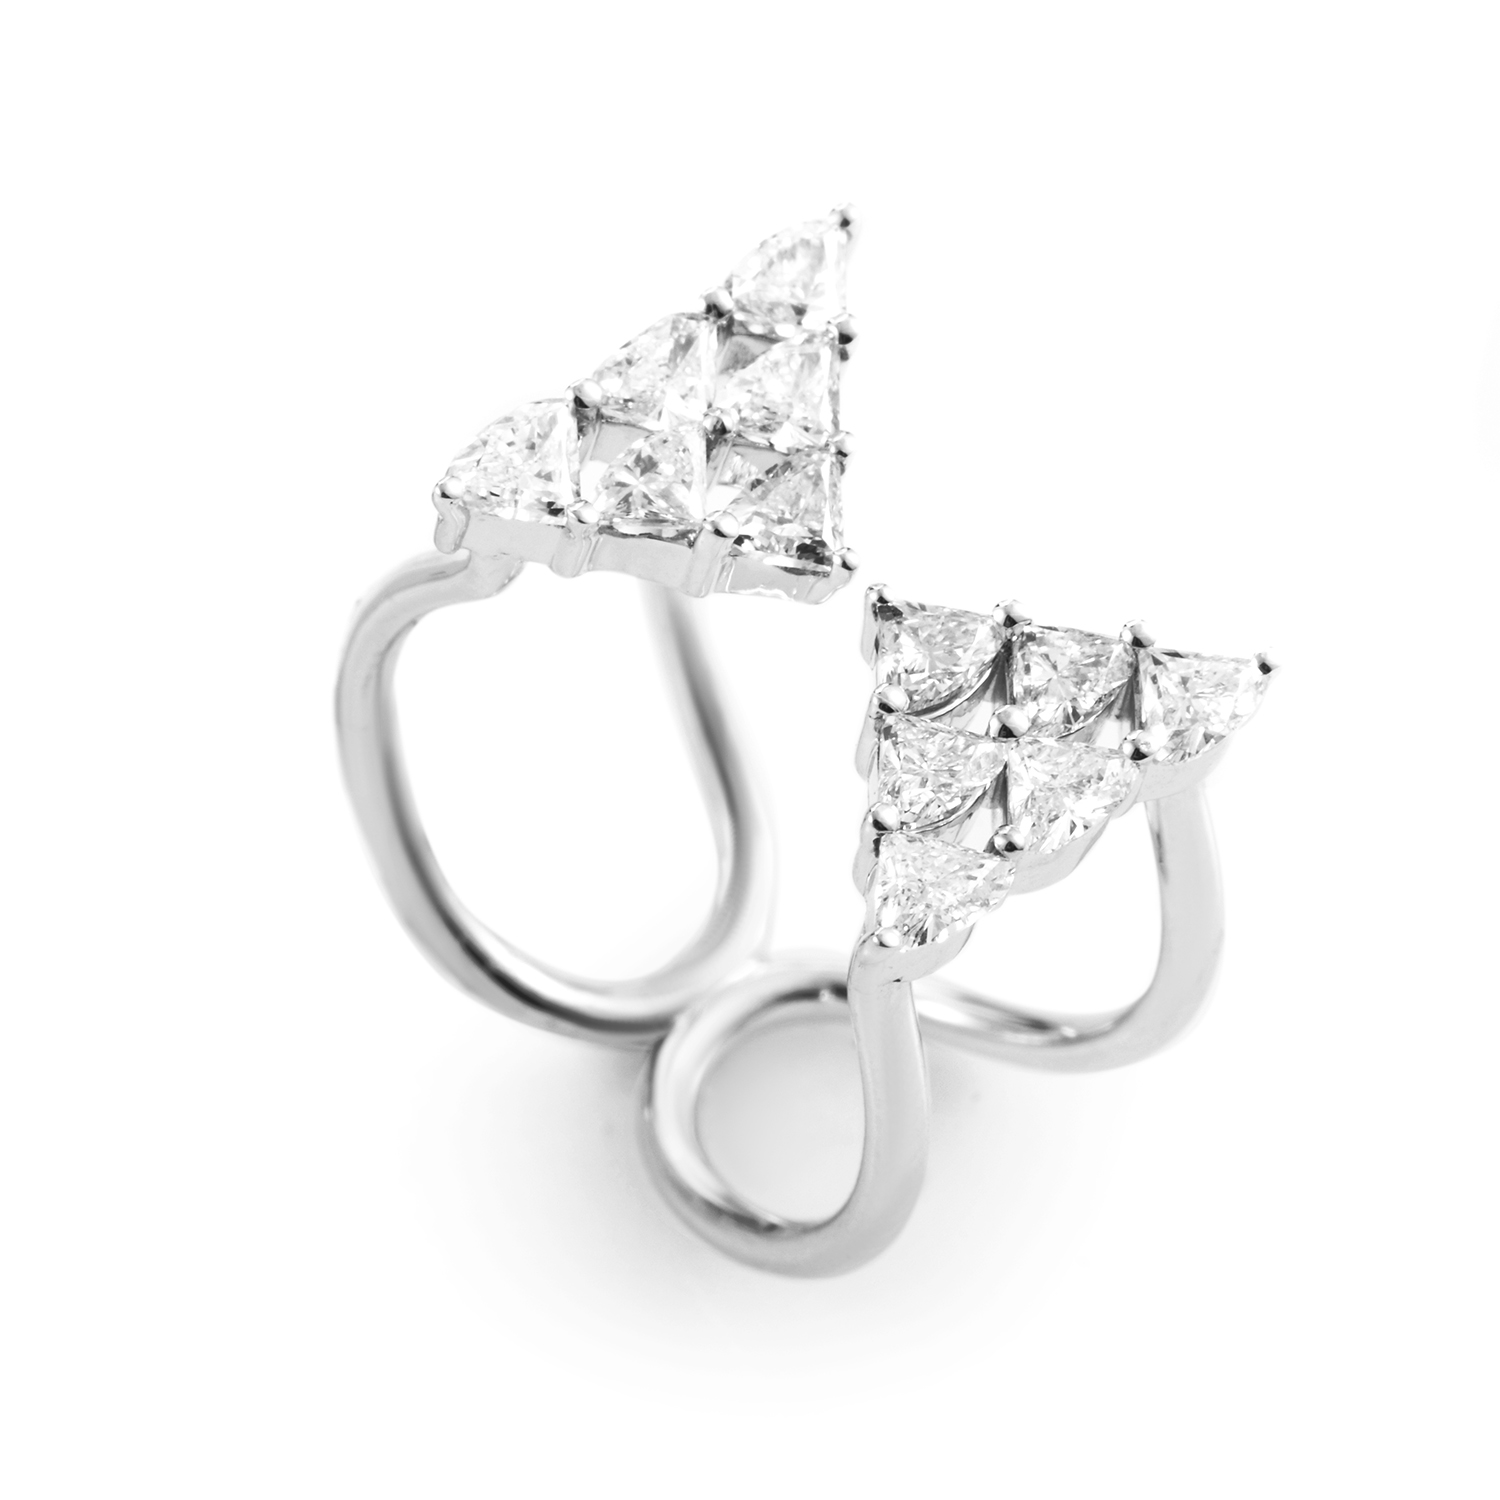 18K White Gold Diamond Ring KO081RKLBZ